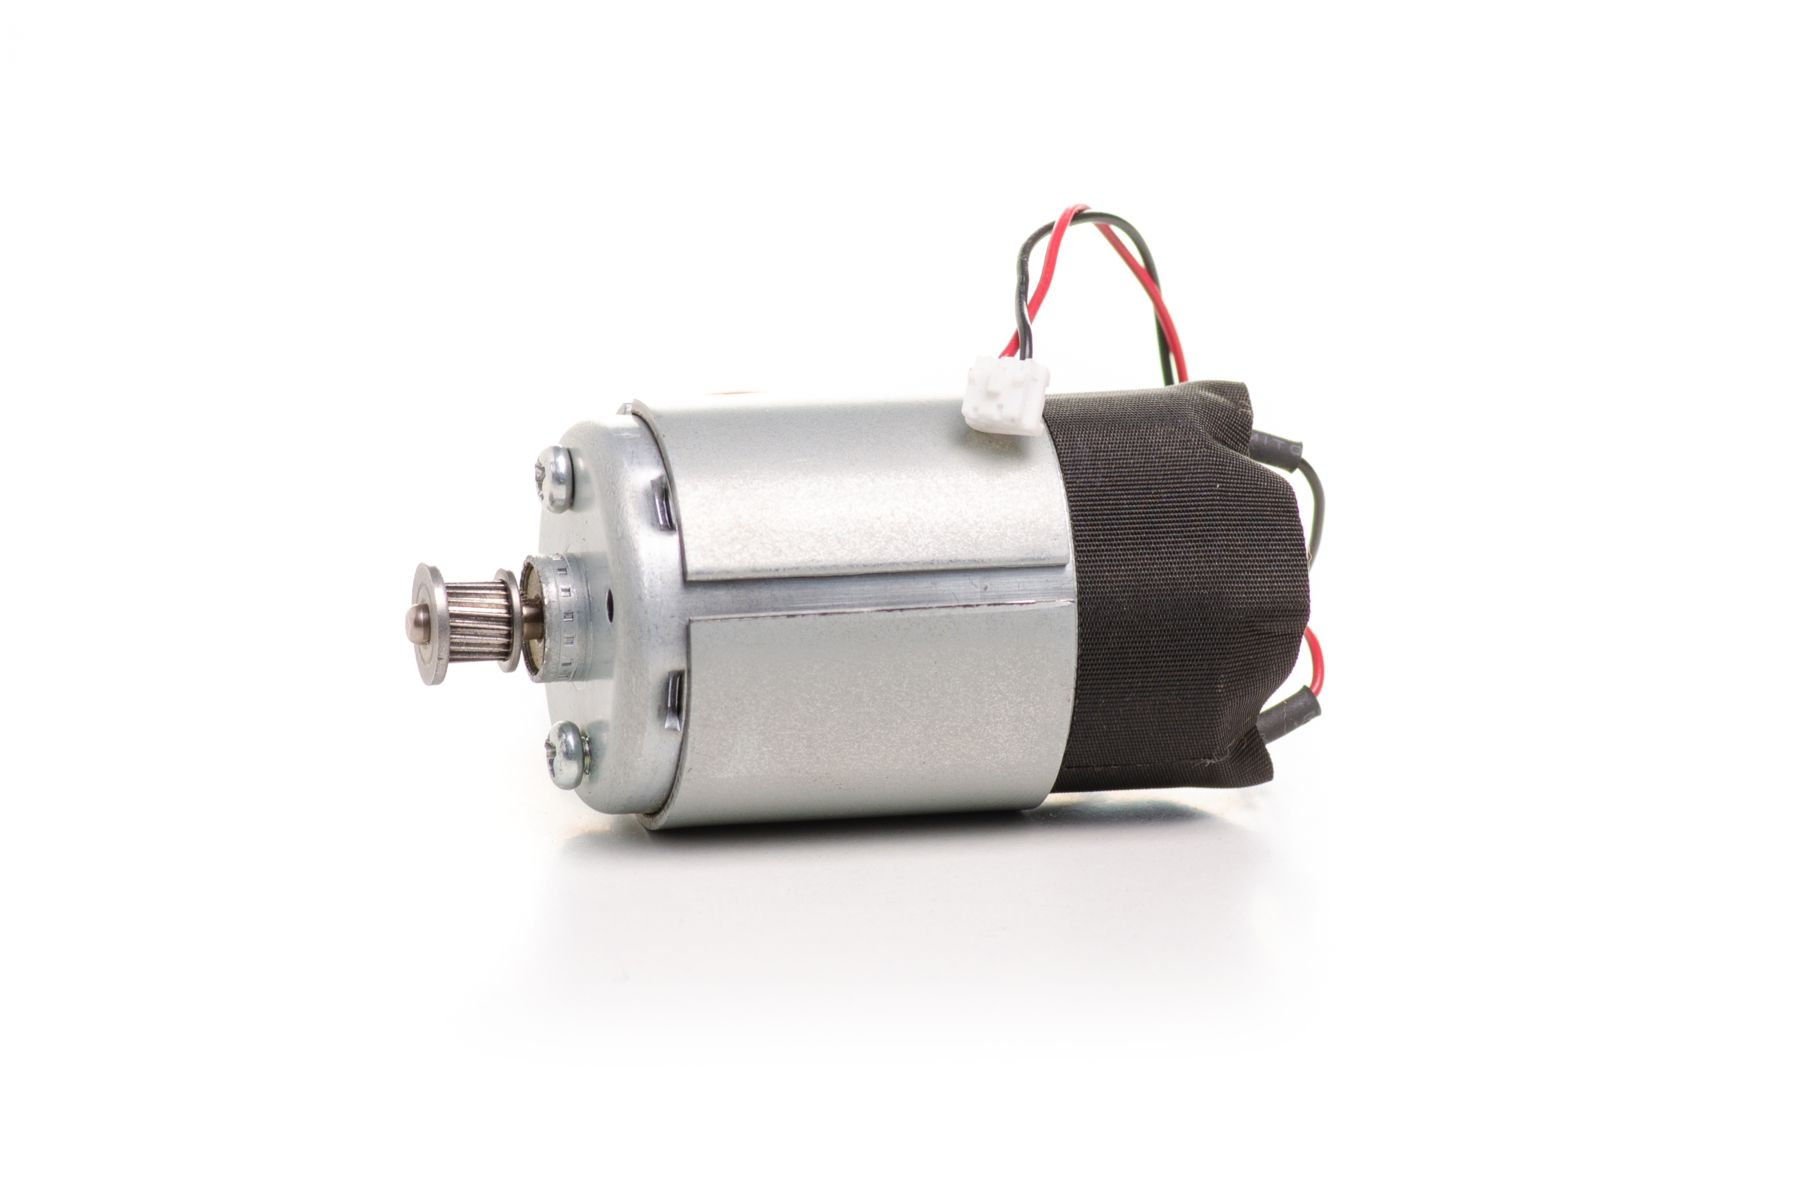 Benefits of DC Motors and Why They're Great for Robotics